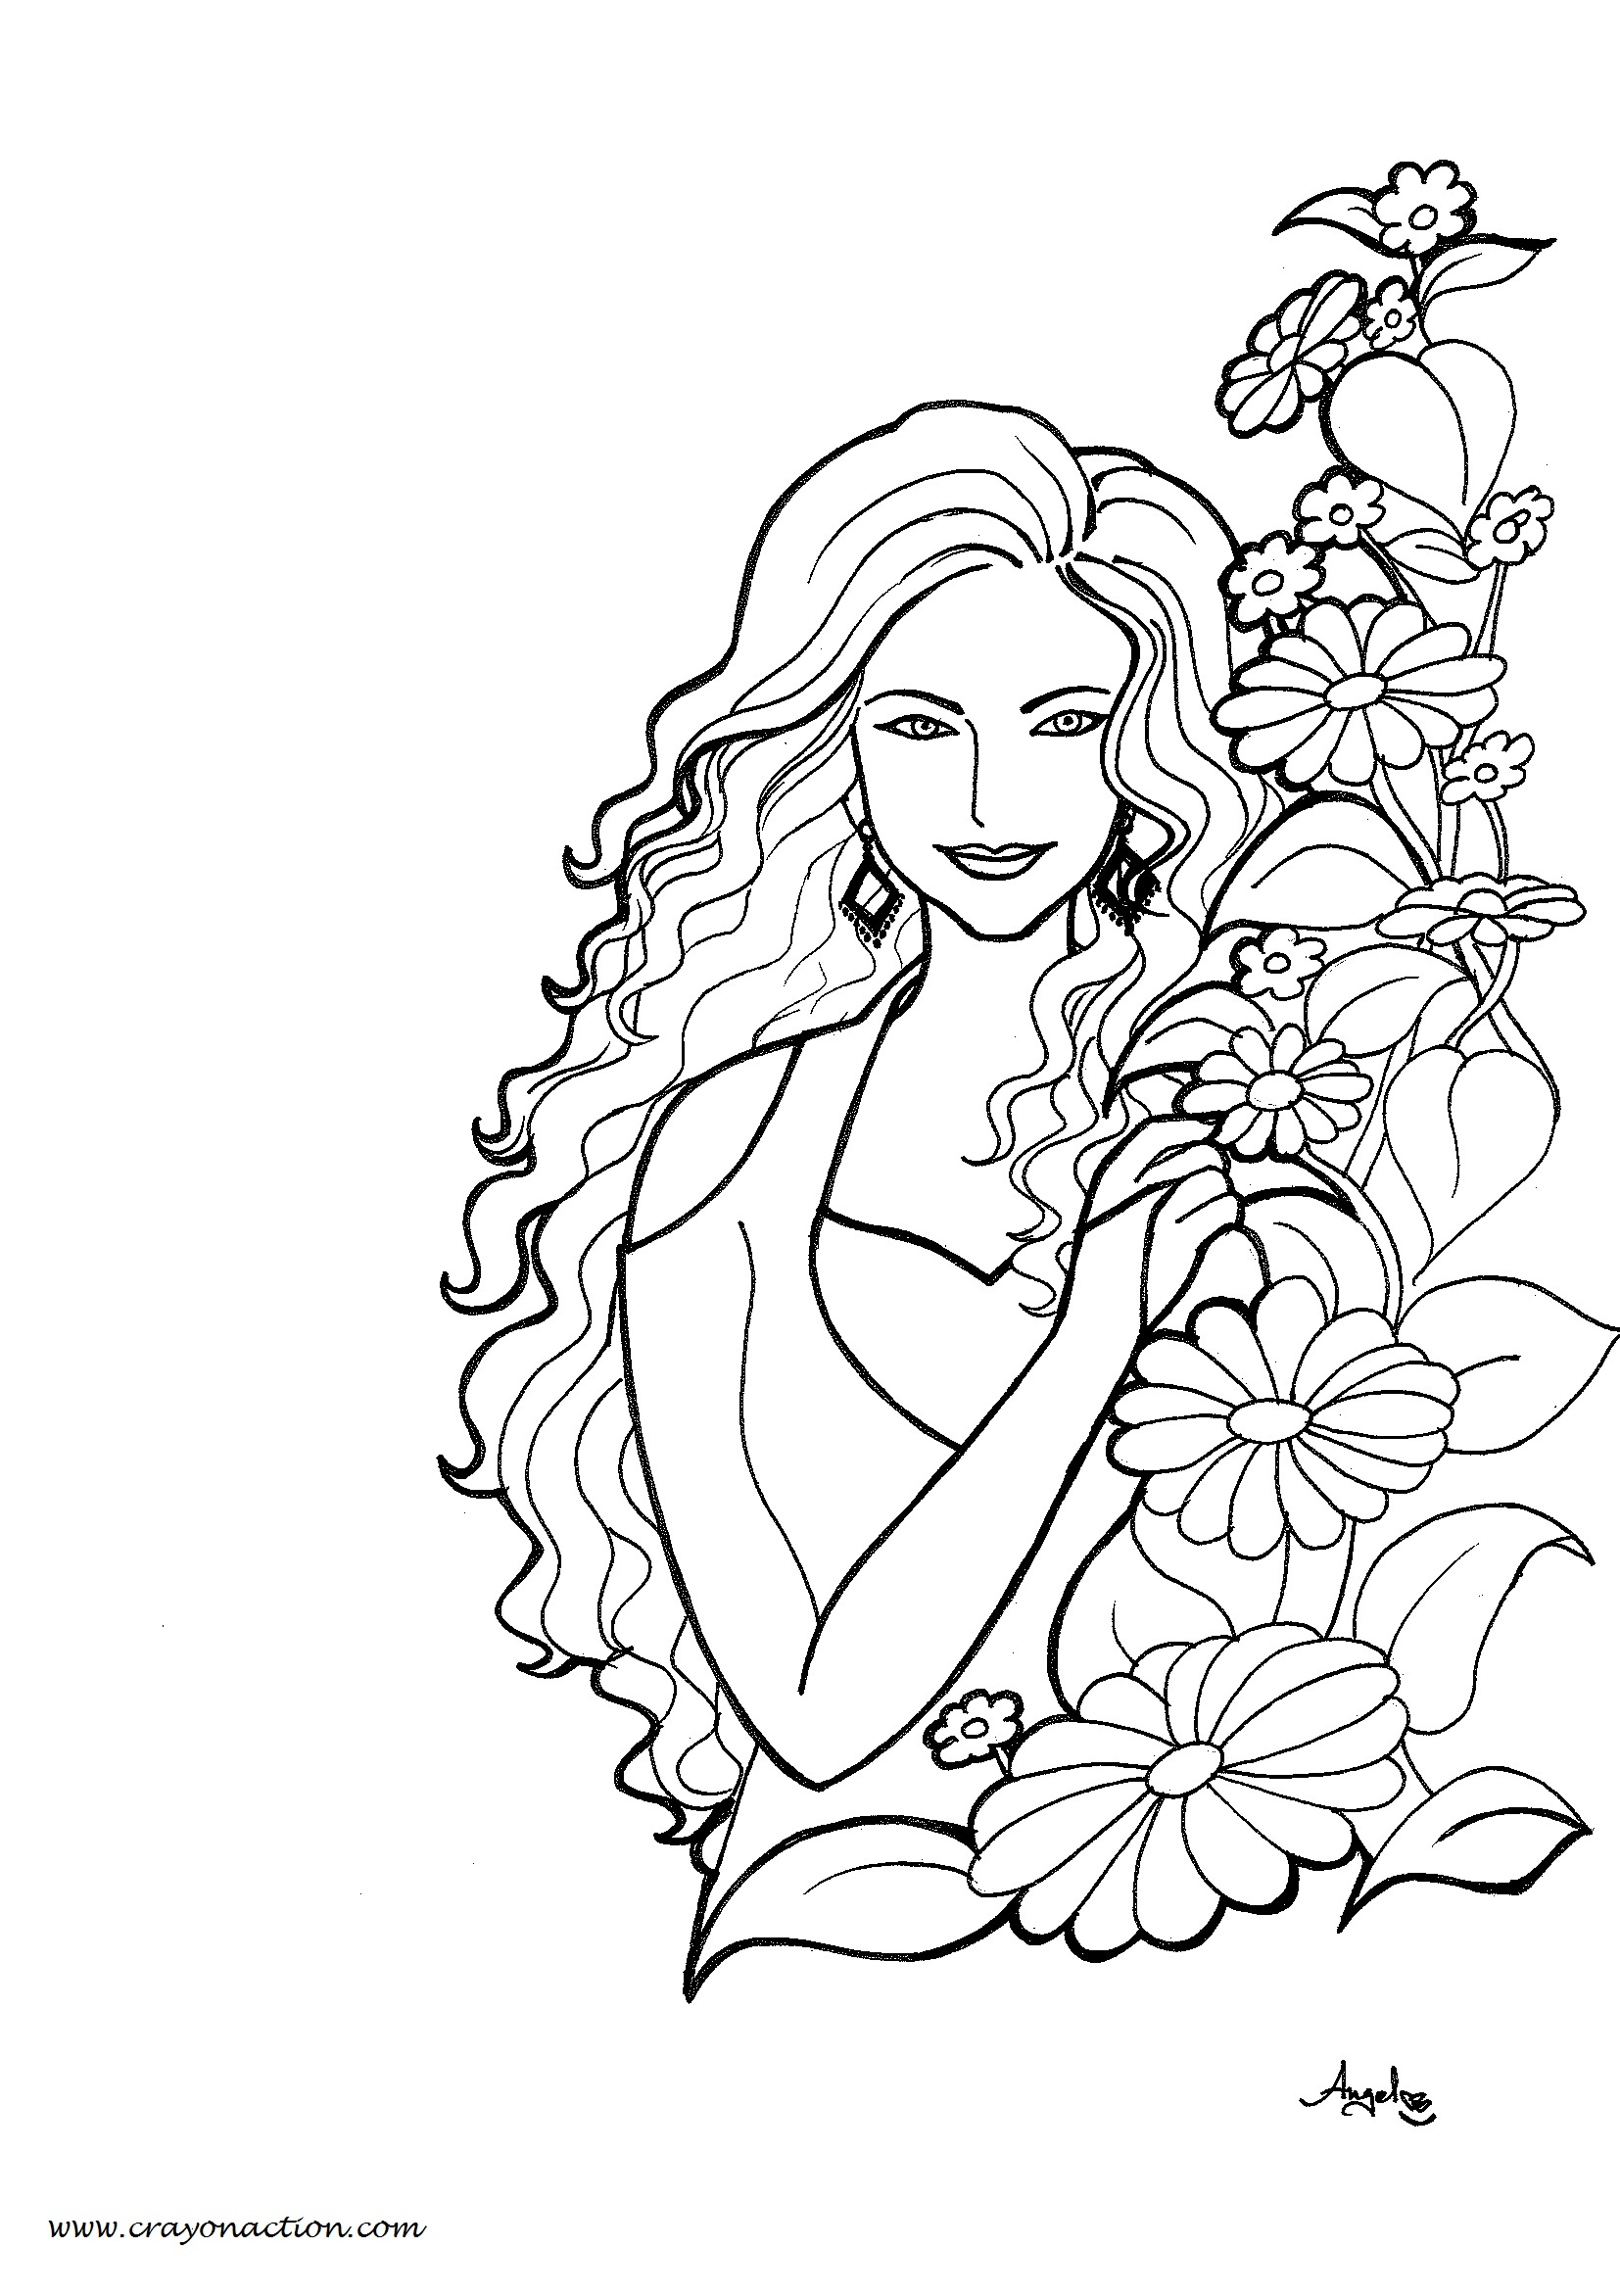 beautiful colouring pictures coloring page with beautiful princess in pretty dress beautiful colouring pictures